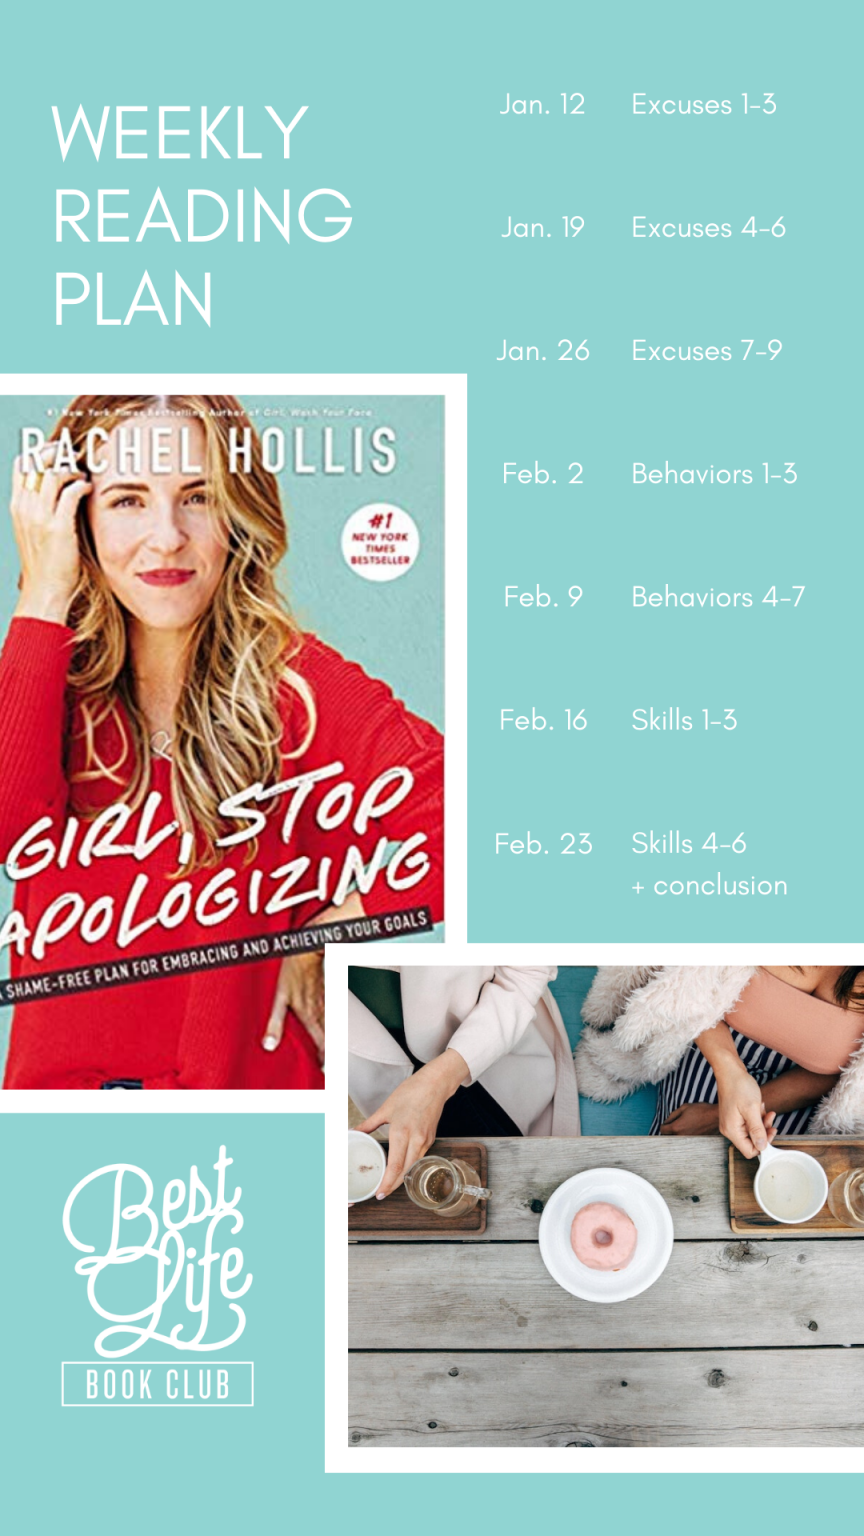 Reading Plan for Girl, Stop Apologizing by Rachel Hollis. Best Life Book Club is an online book club for women. Self-help and personal empowerment.